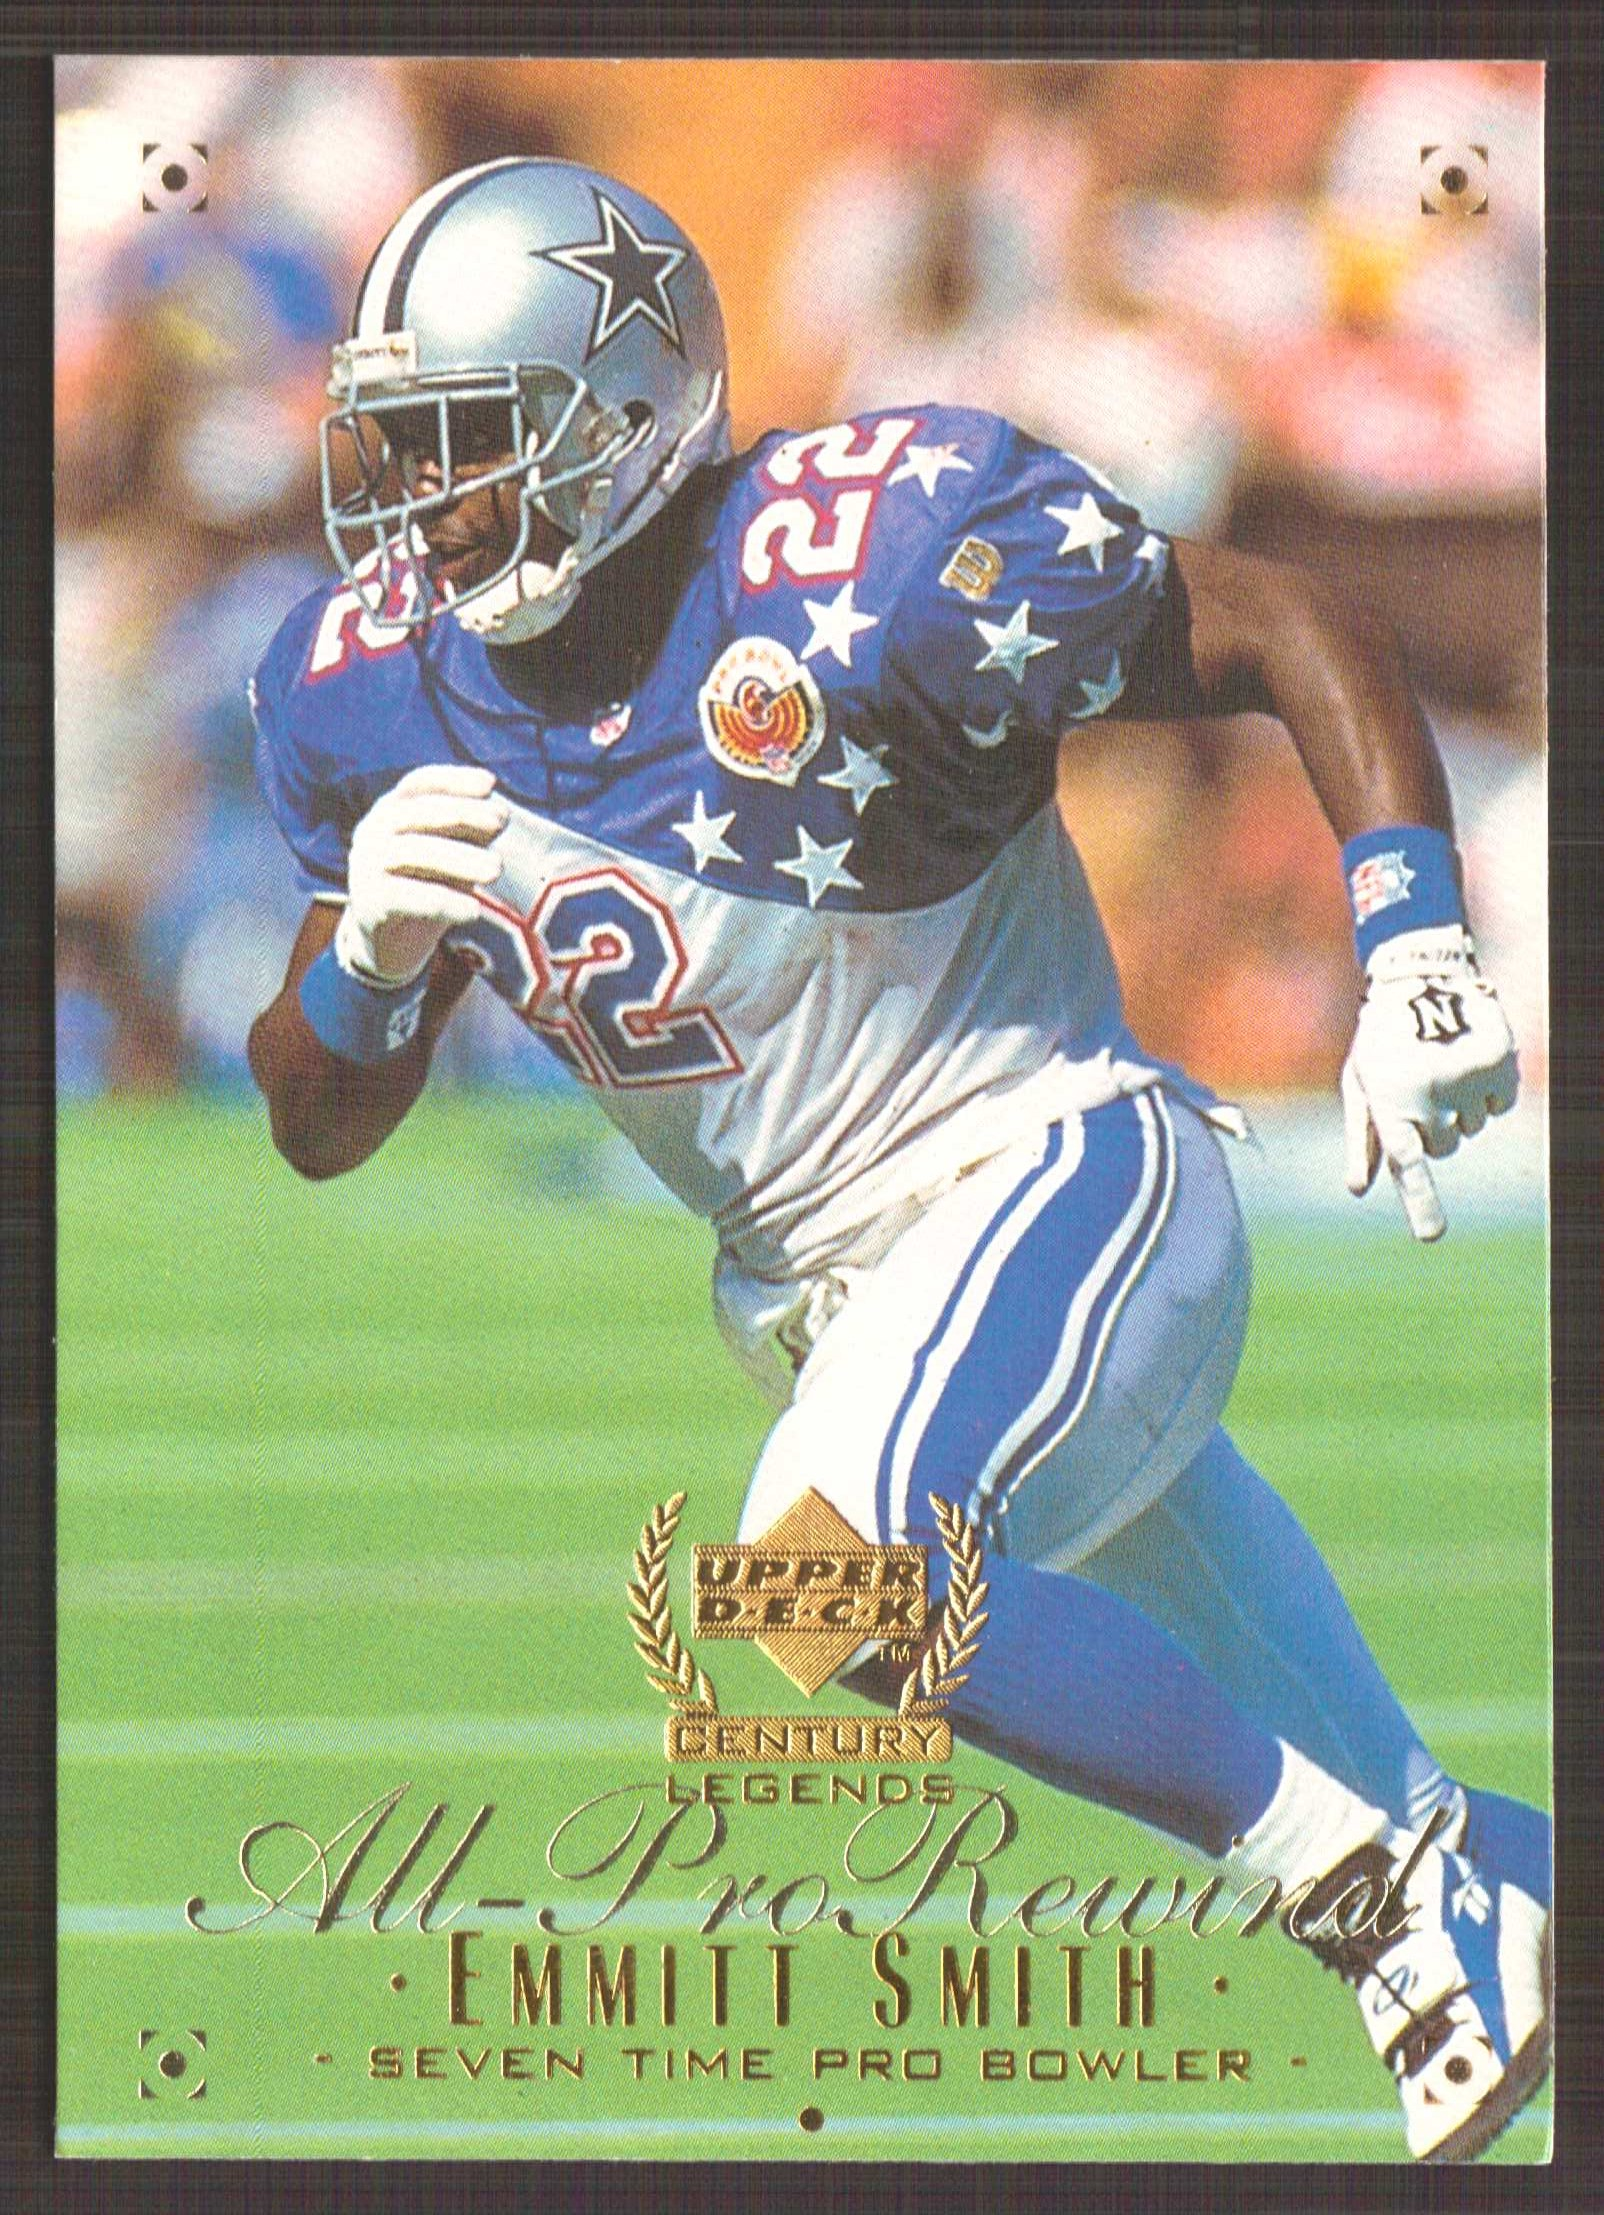 1999 Upper Deck Century Legends #113 Emmitt Smith APR